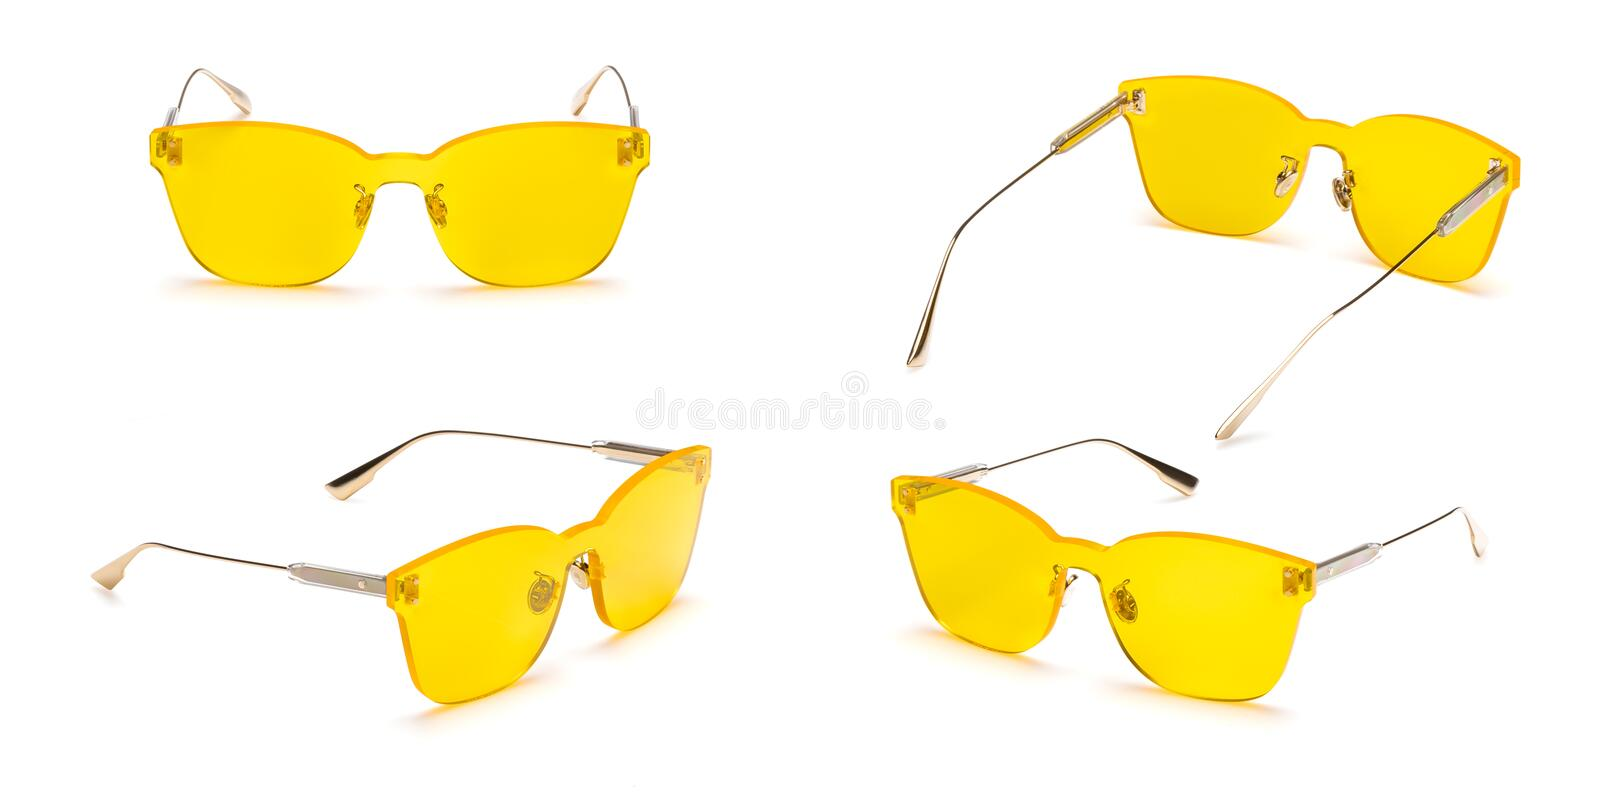 Metal sunglasses with polarizing yellow gradient Mirror Lens isolated on white background. Fashionable summer glasses collection royalty free stock photos